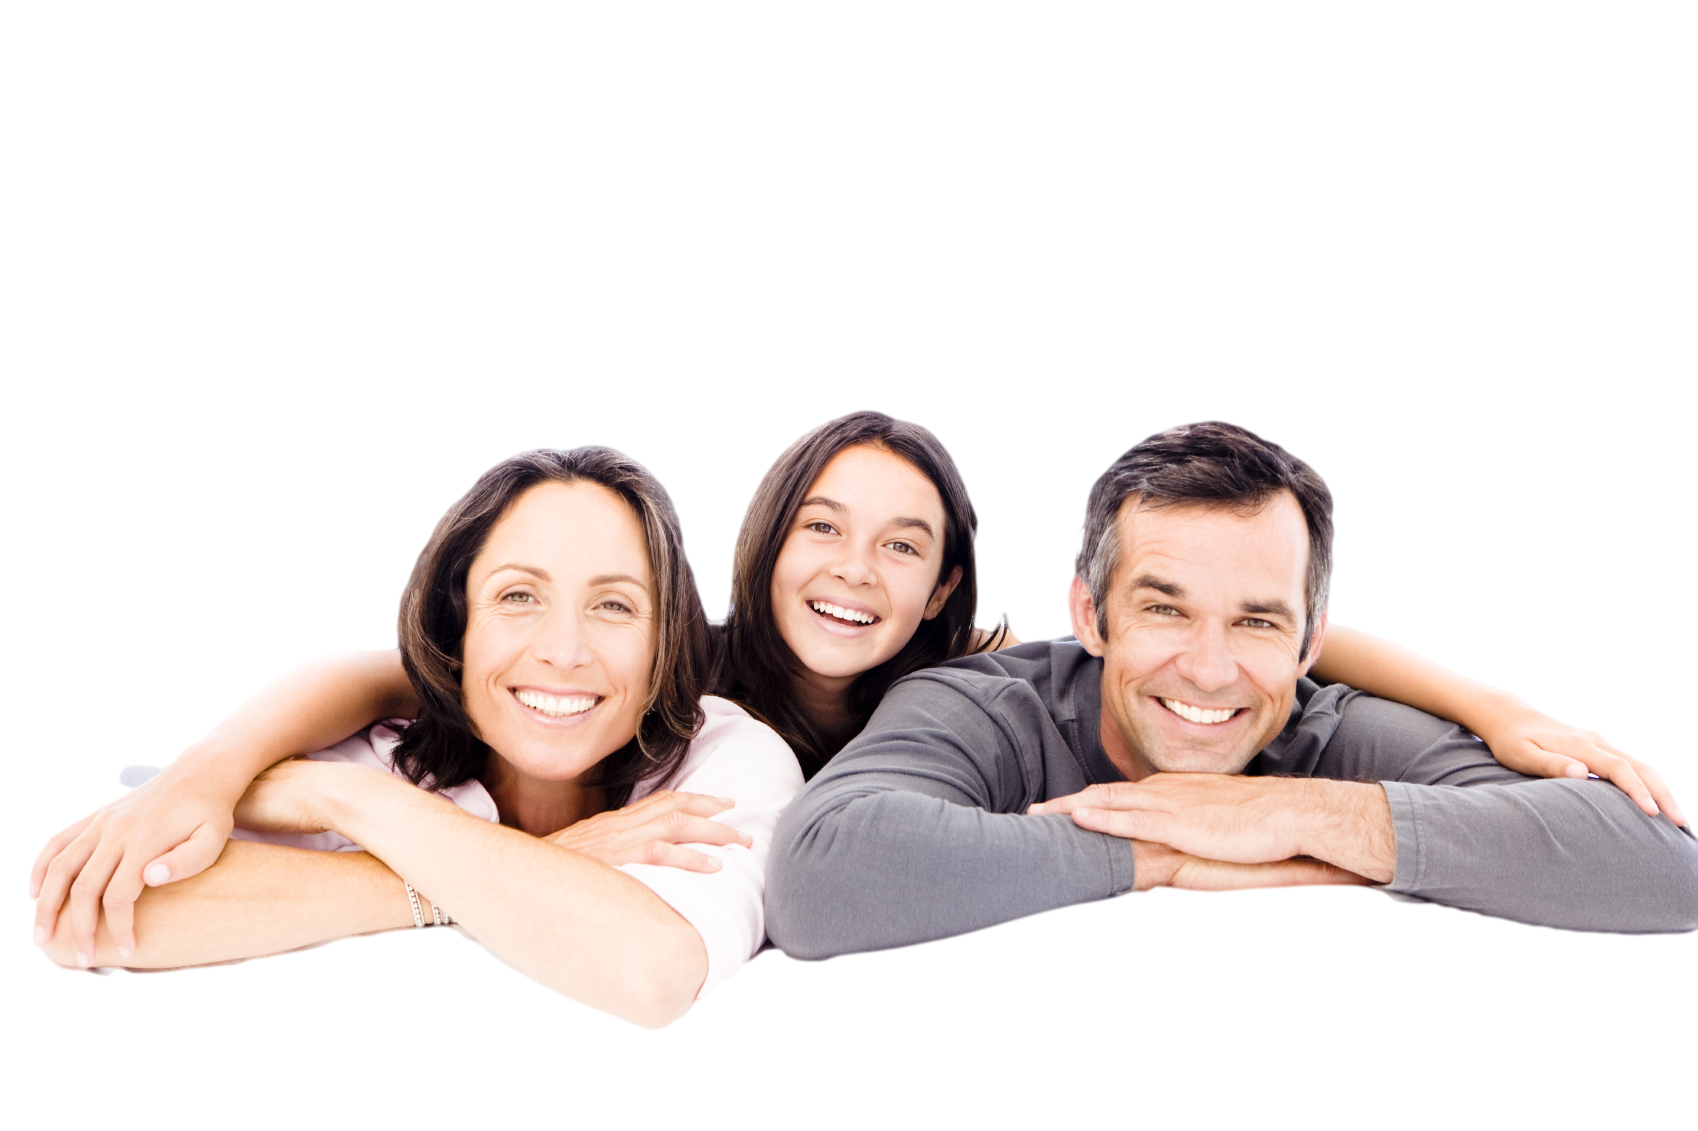 Family Png image #40058